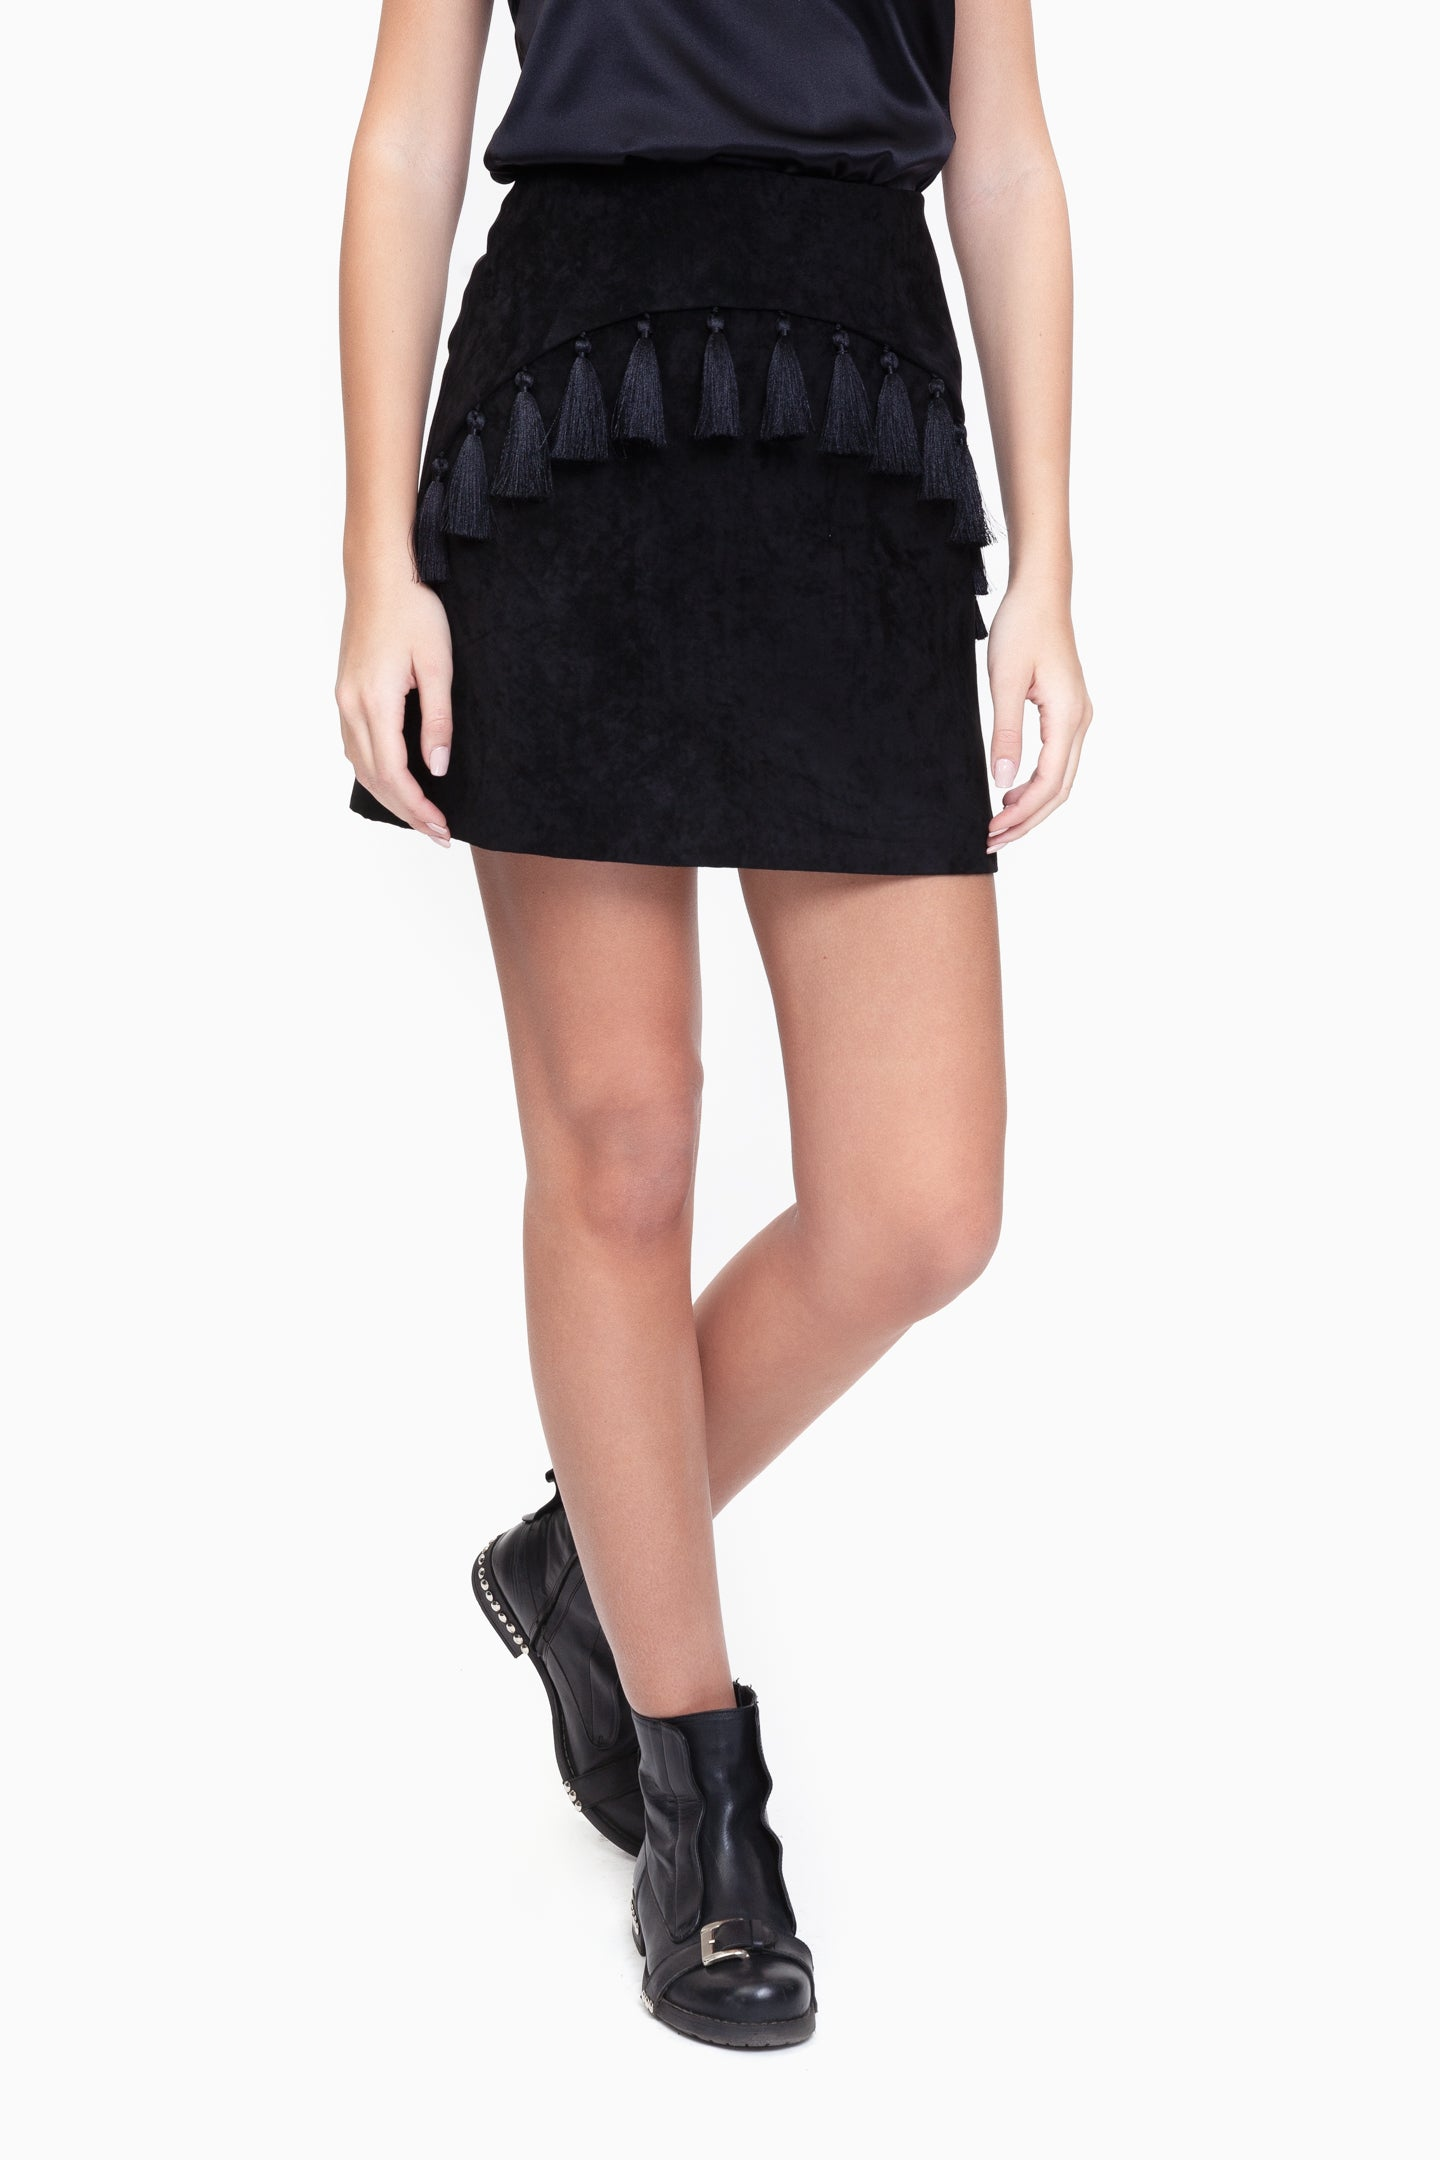 Eleanor Black Tassel Skirt